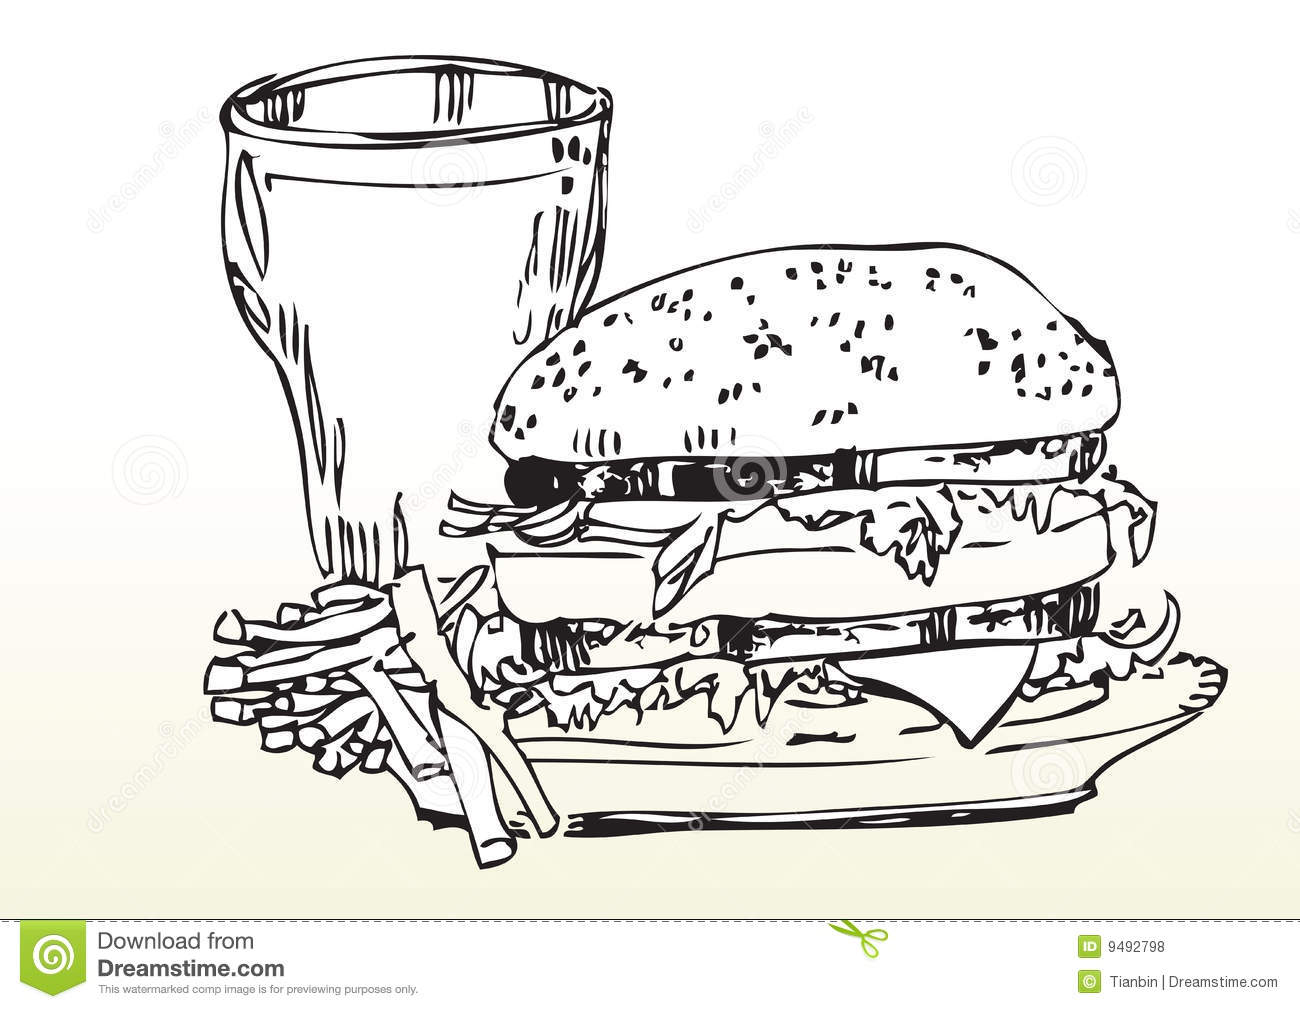 Fast Food Meal Drawing Royalty Free Stock Photos  Image: 9492798